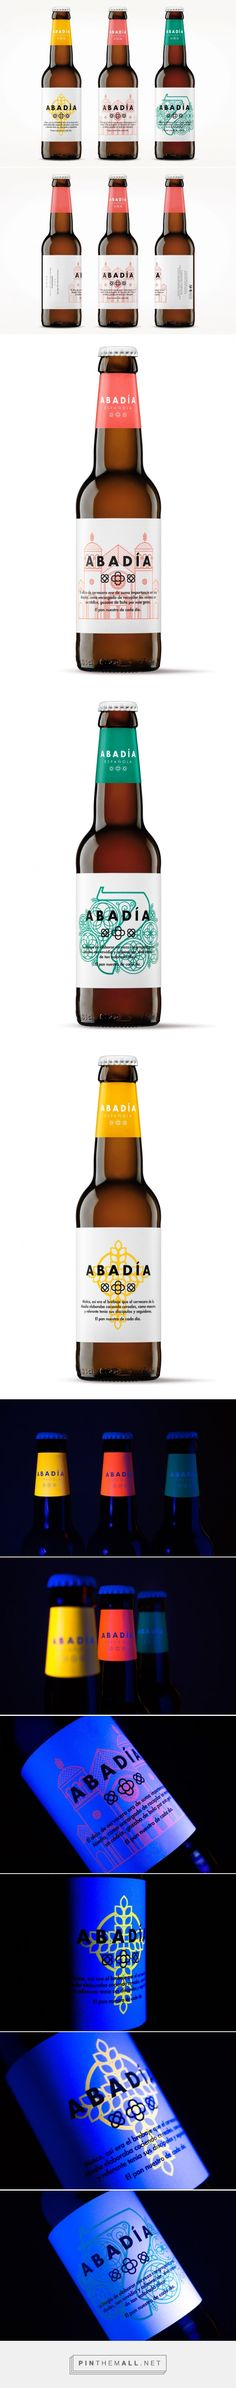 Abbeys (Las Abadías) Packaging of the World. Fabulous beer label created with fluorescent glow-in-the-dark ink. Beverage Packaging, Bottle Packaging, Brand Packaging, Cool Packaging, Packaging Inspiration, Beer Factory, Beer Label Design, Beer Brands, Branding